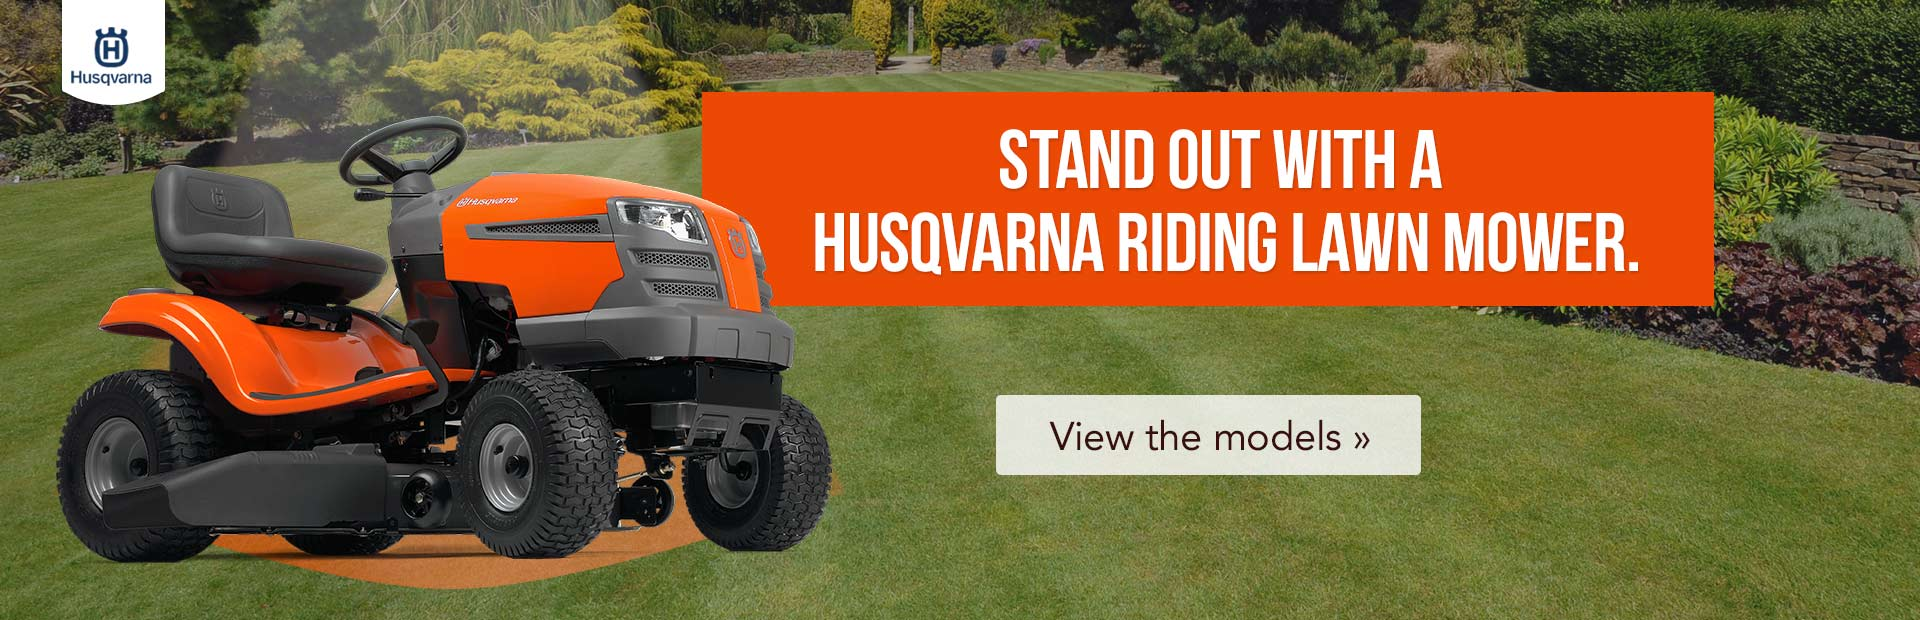 Stand out with a Husqvarna riding lawn mower.